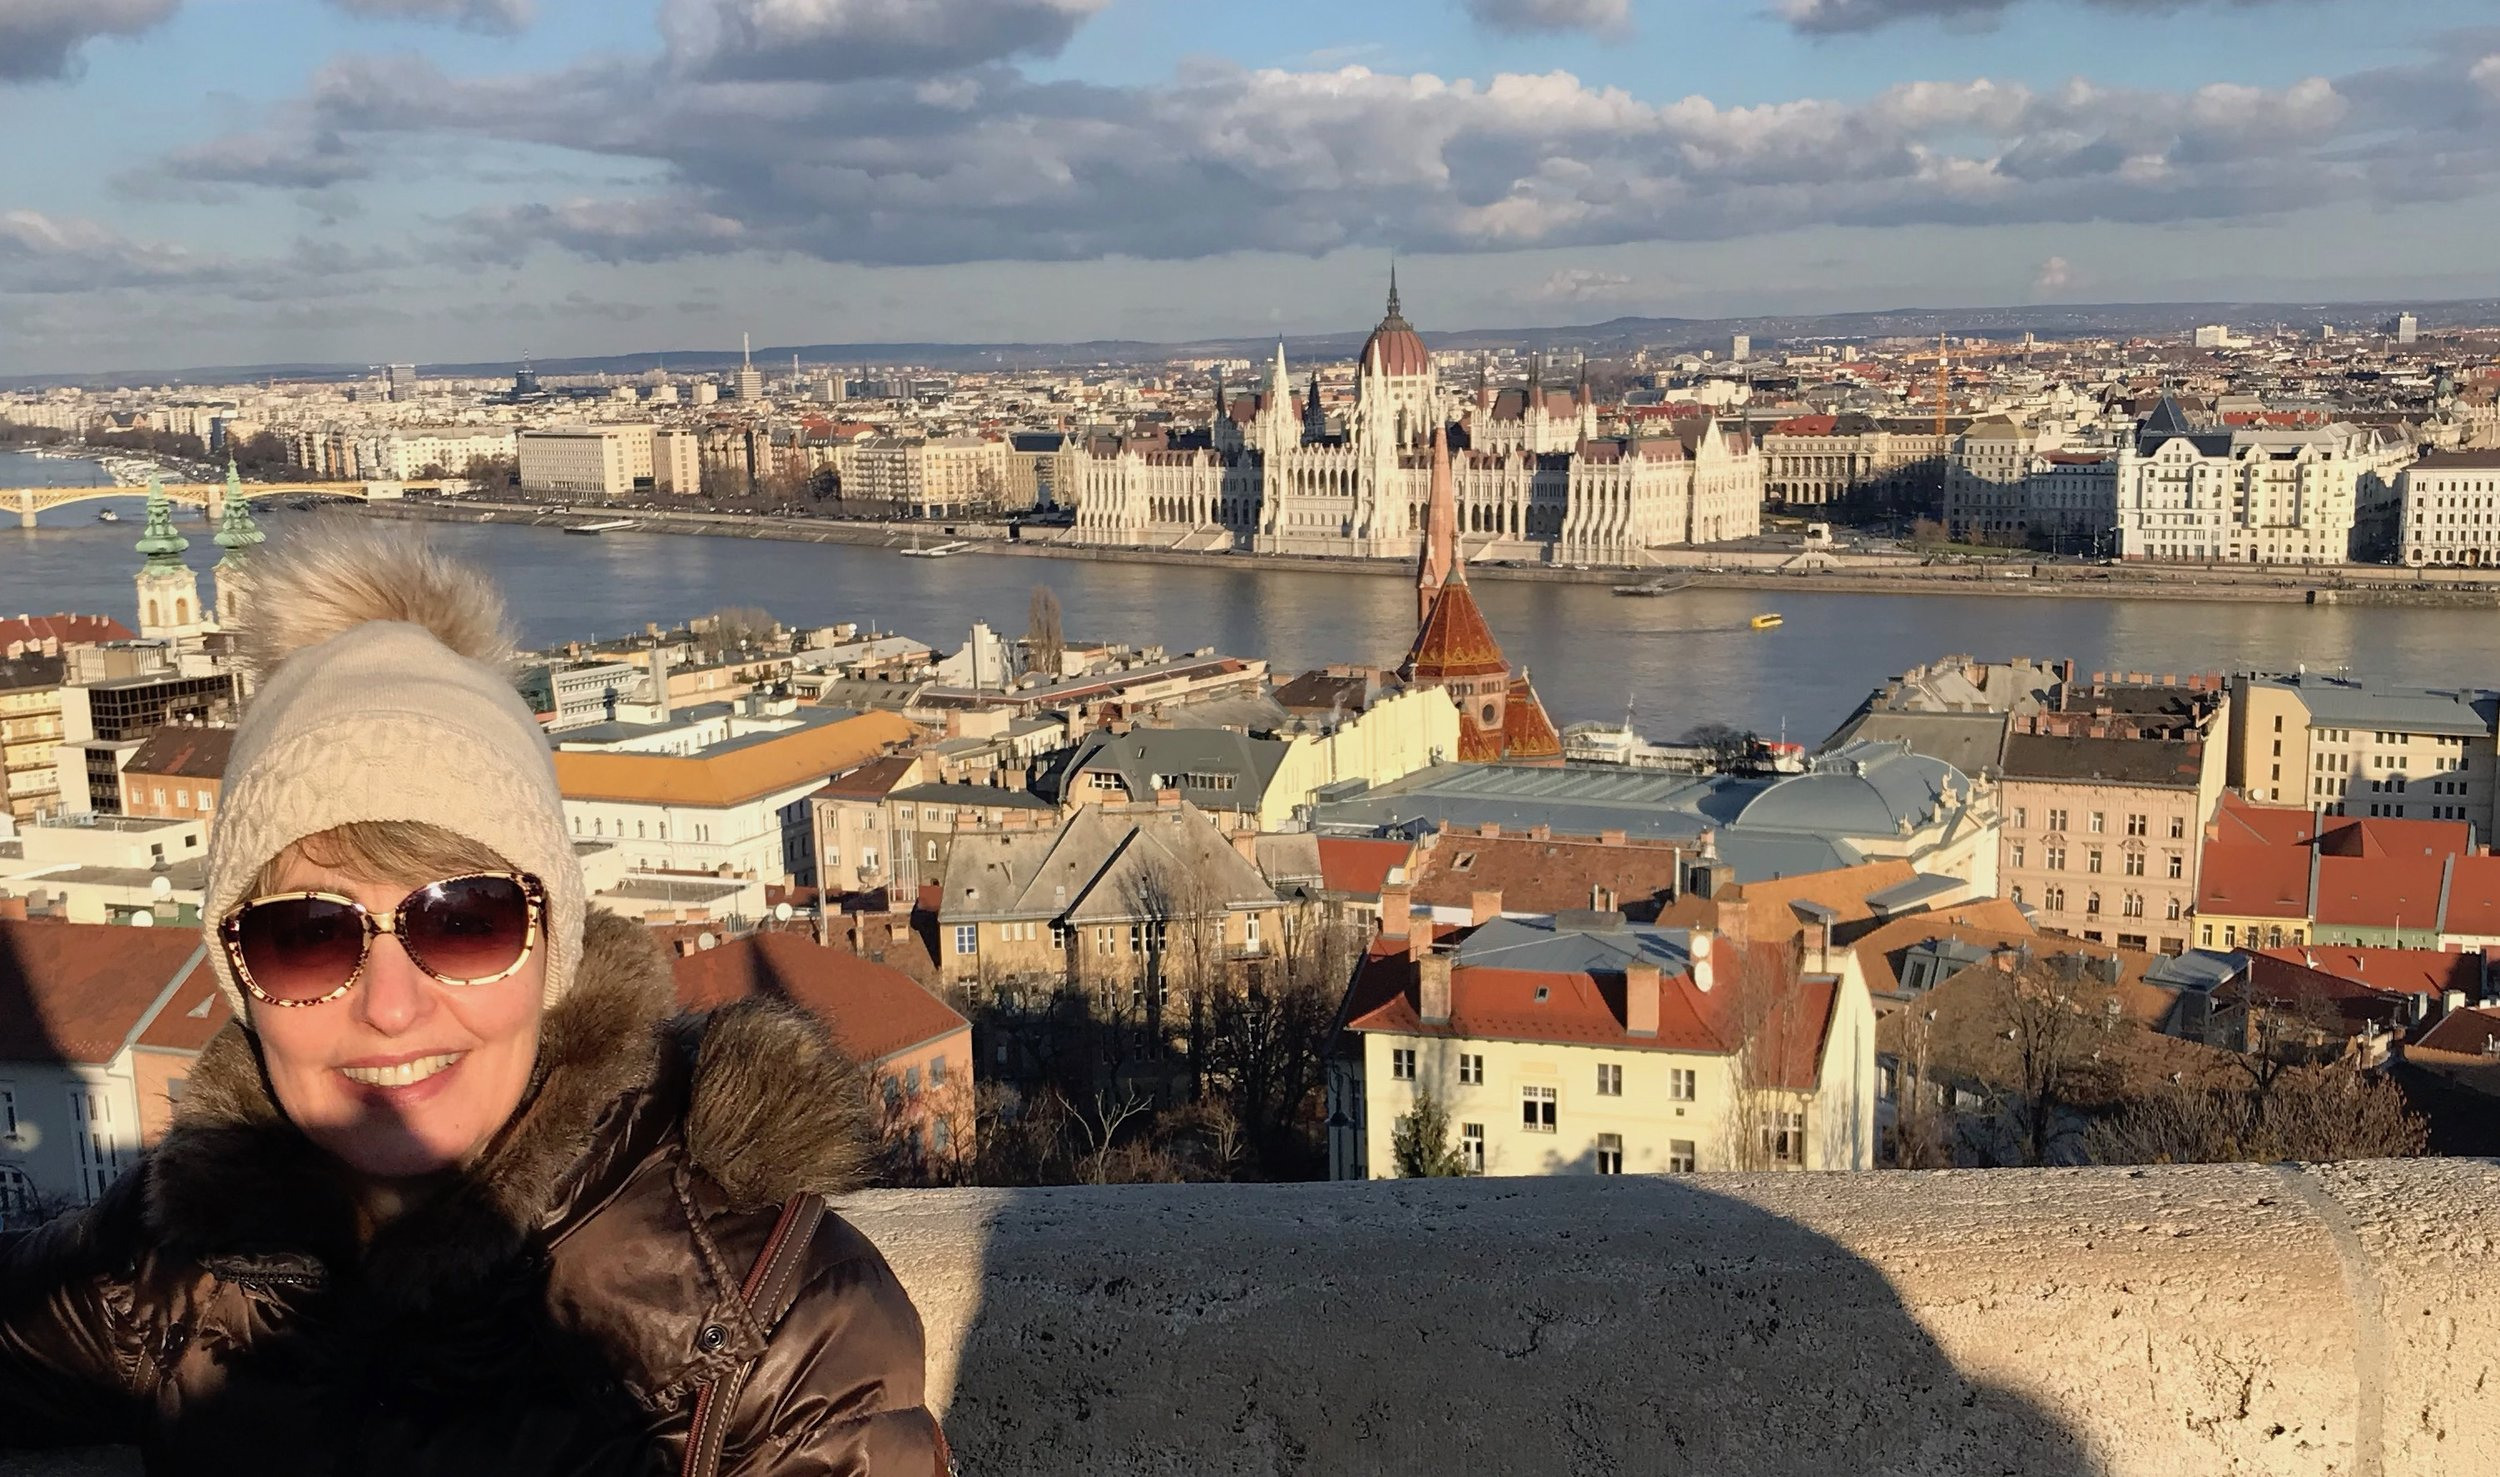 Budapest from Fisherman's Bastion on Castle Hill